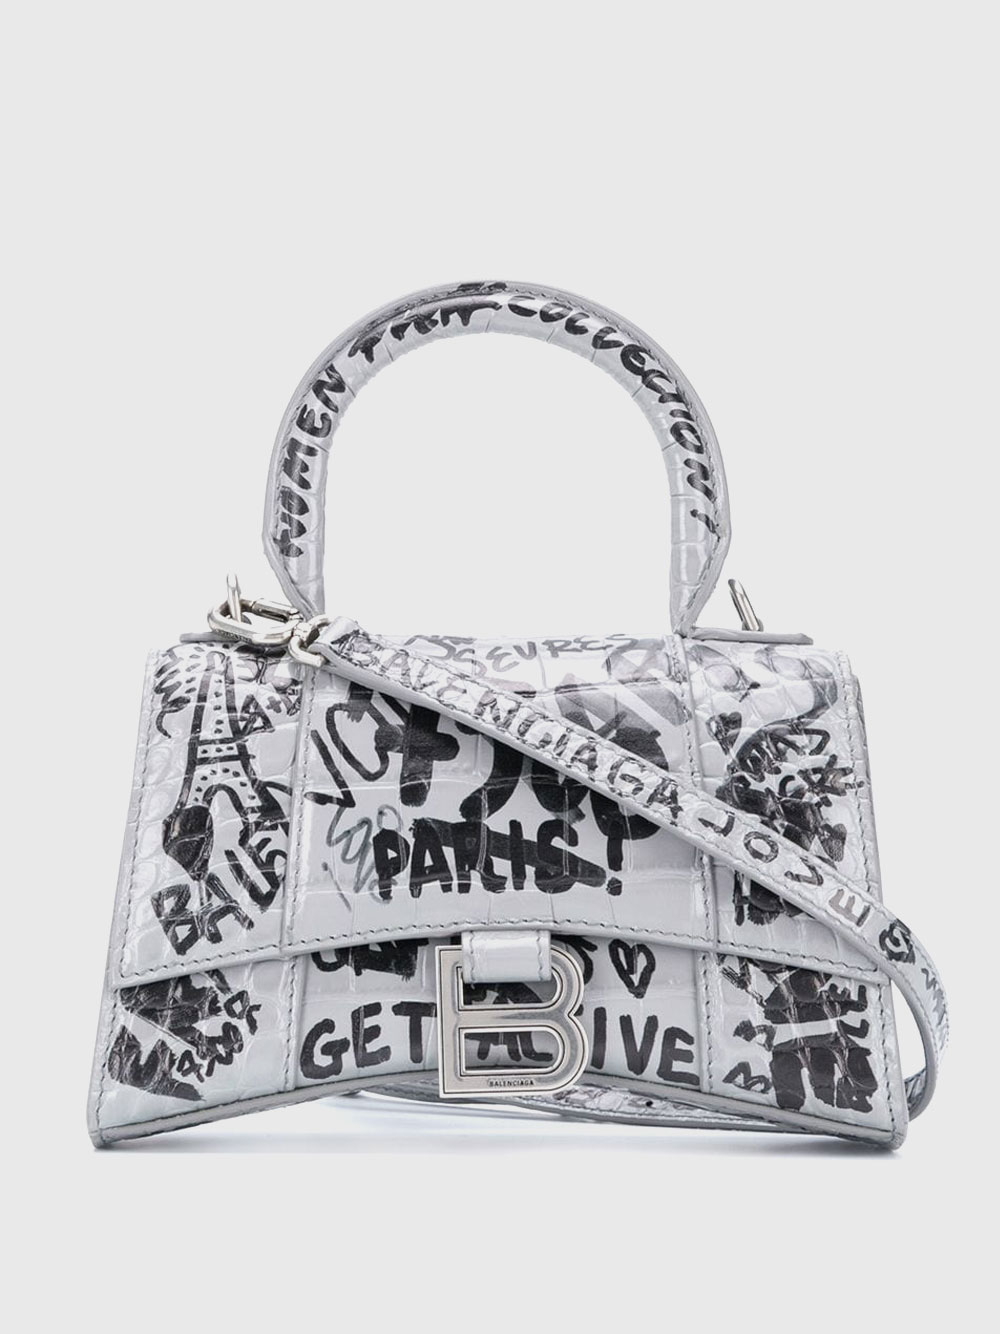 XS Hourglass Top Handle Bag with Graffiti Pattern